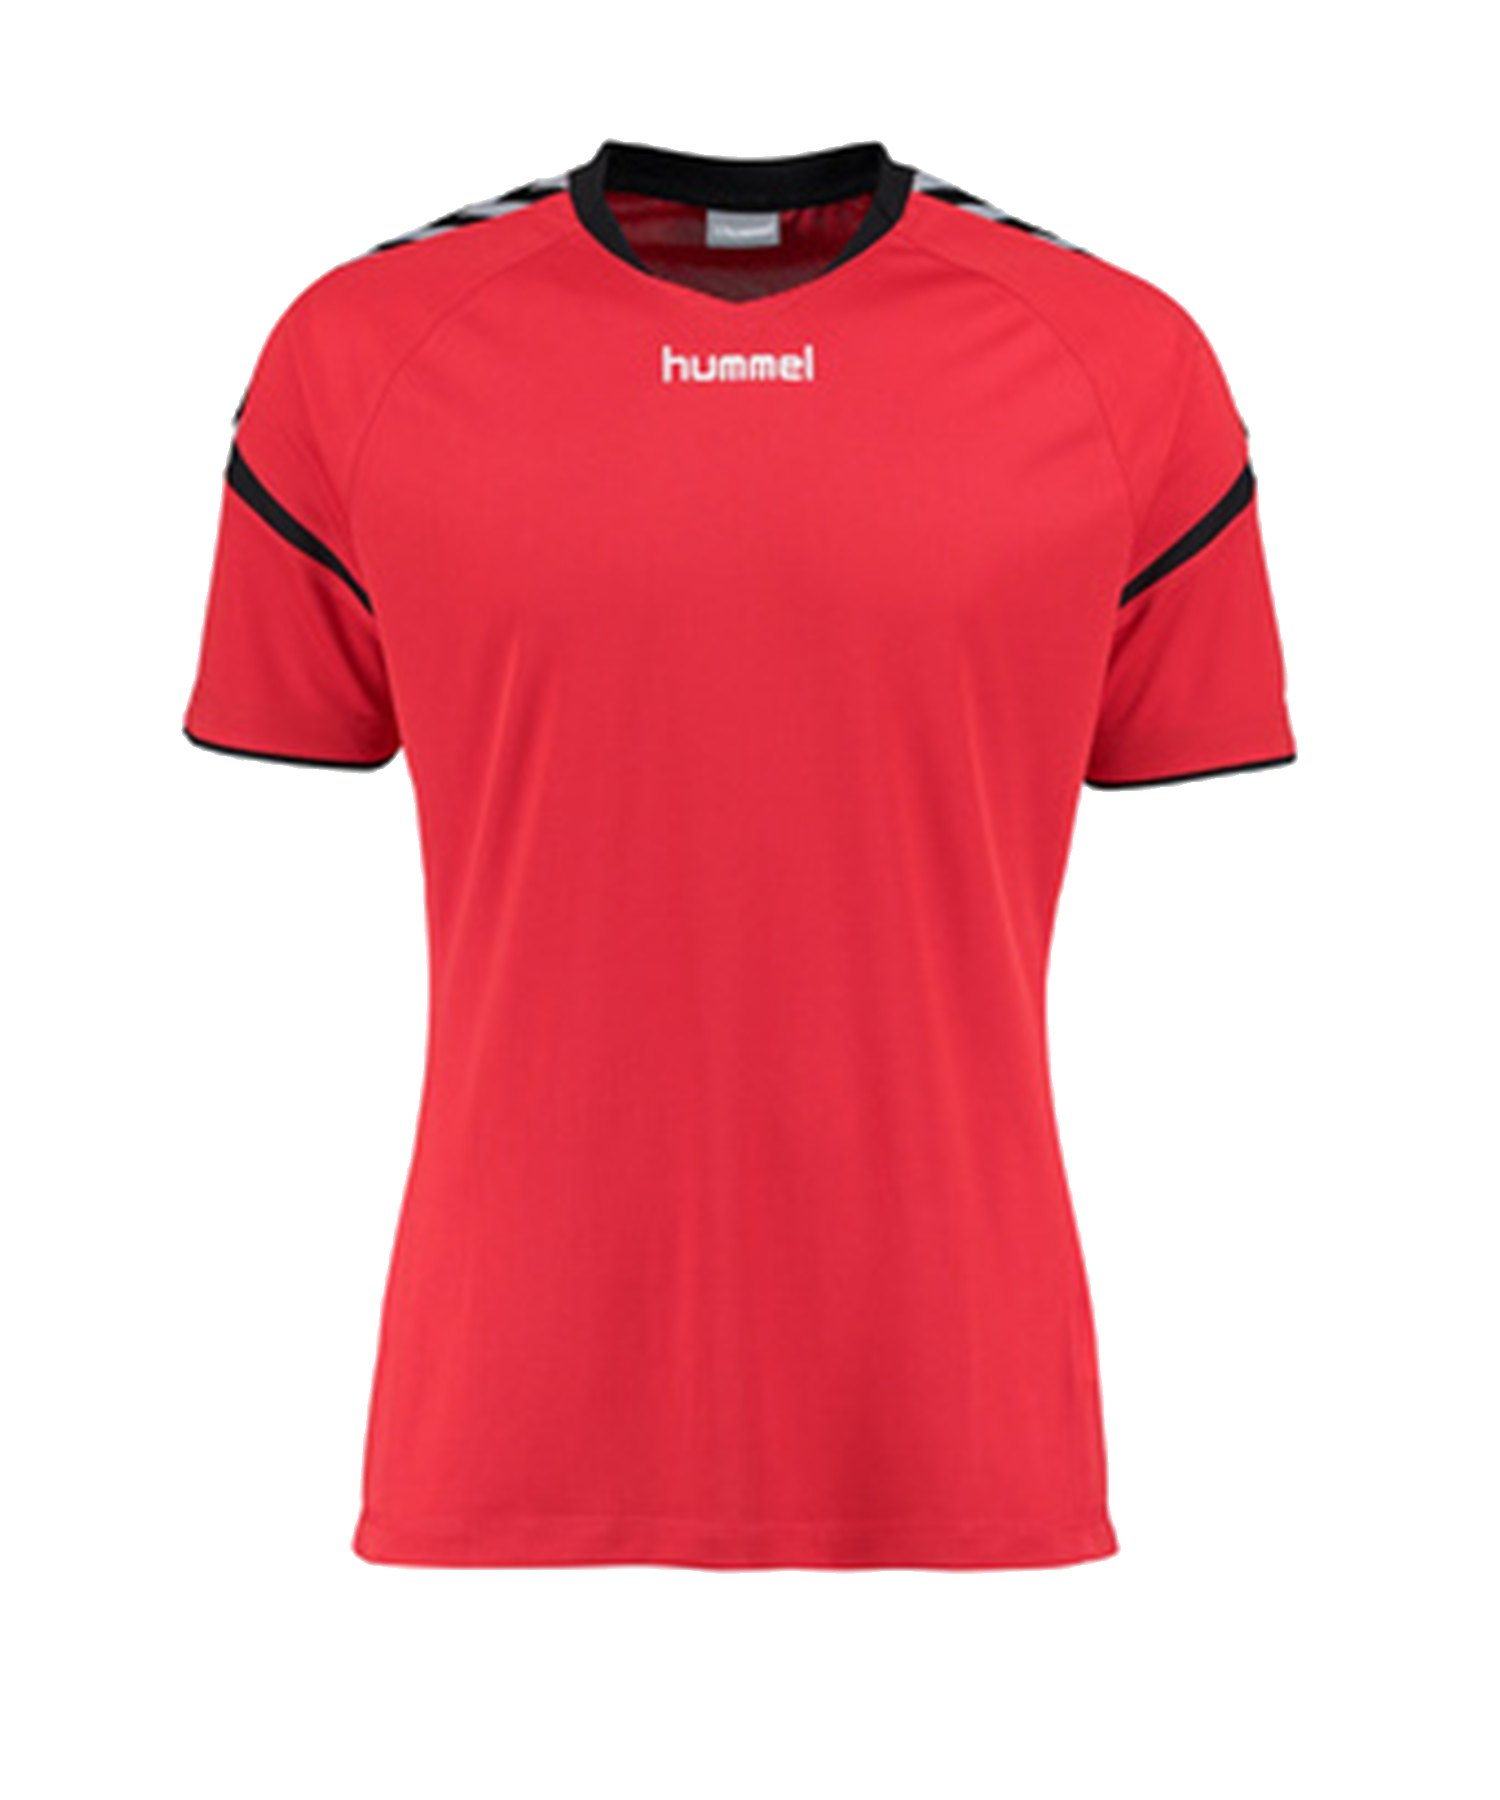 Hummel Authentic Charge SS Trikot Rot F3061 - rot